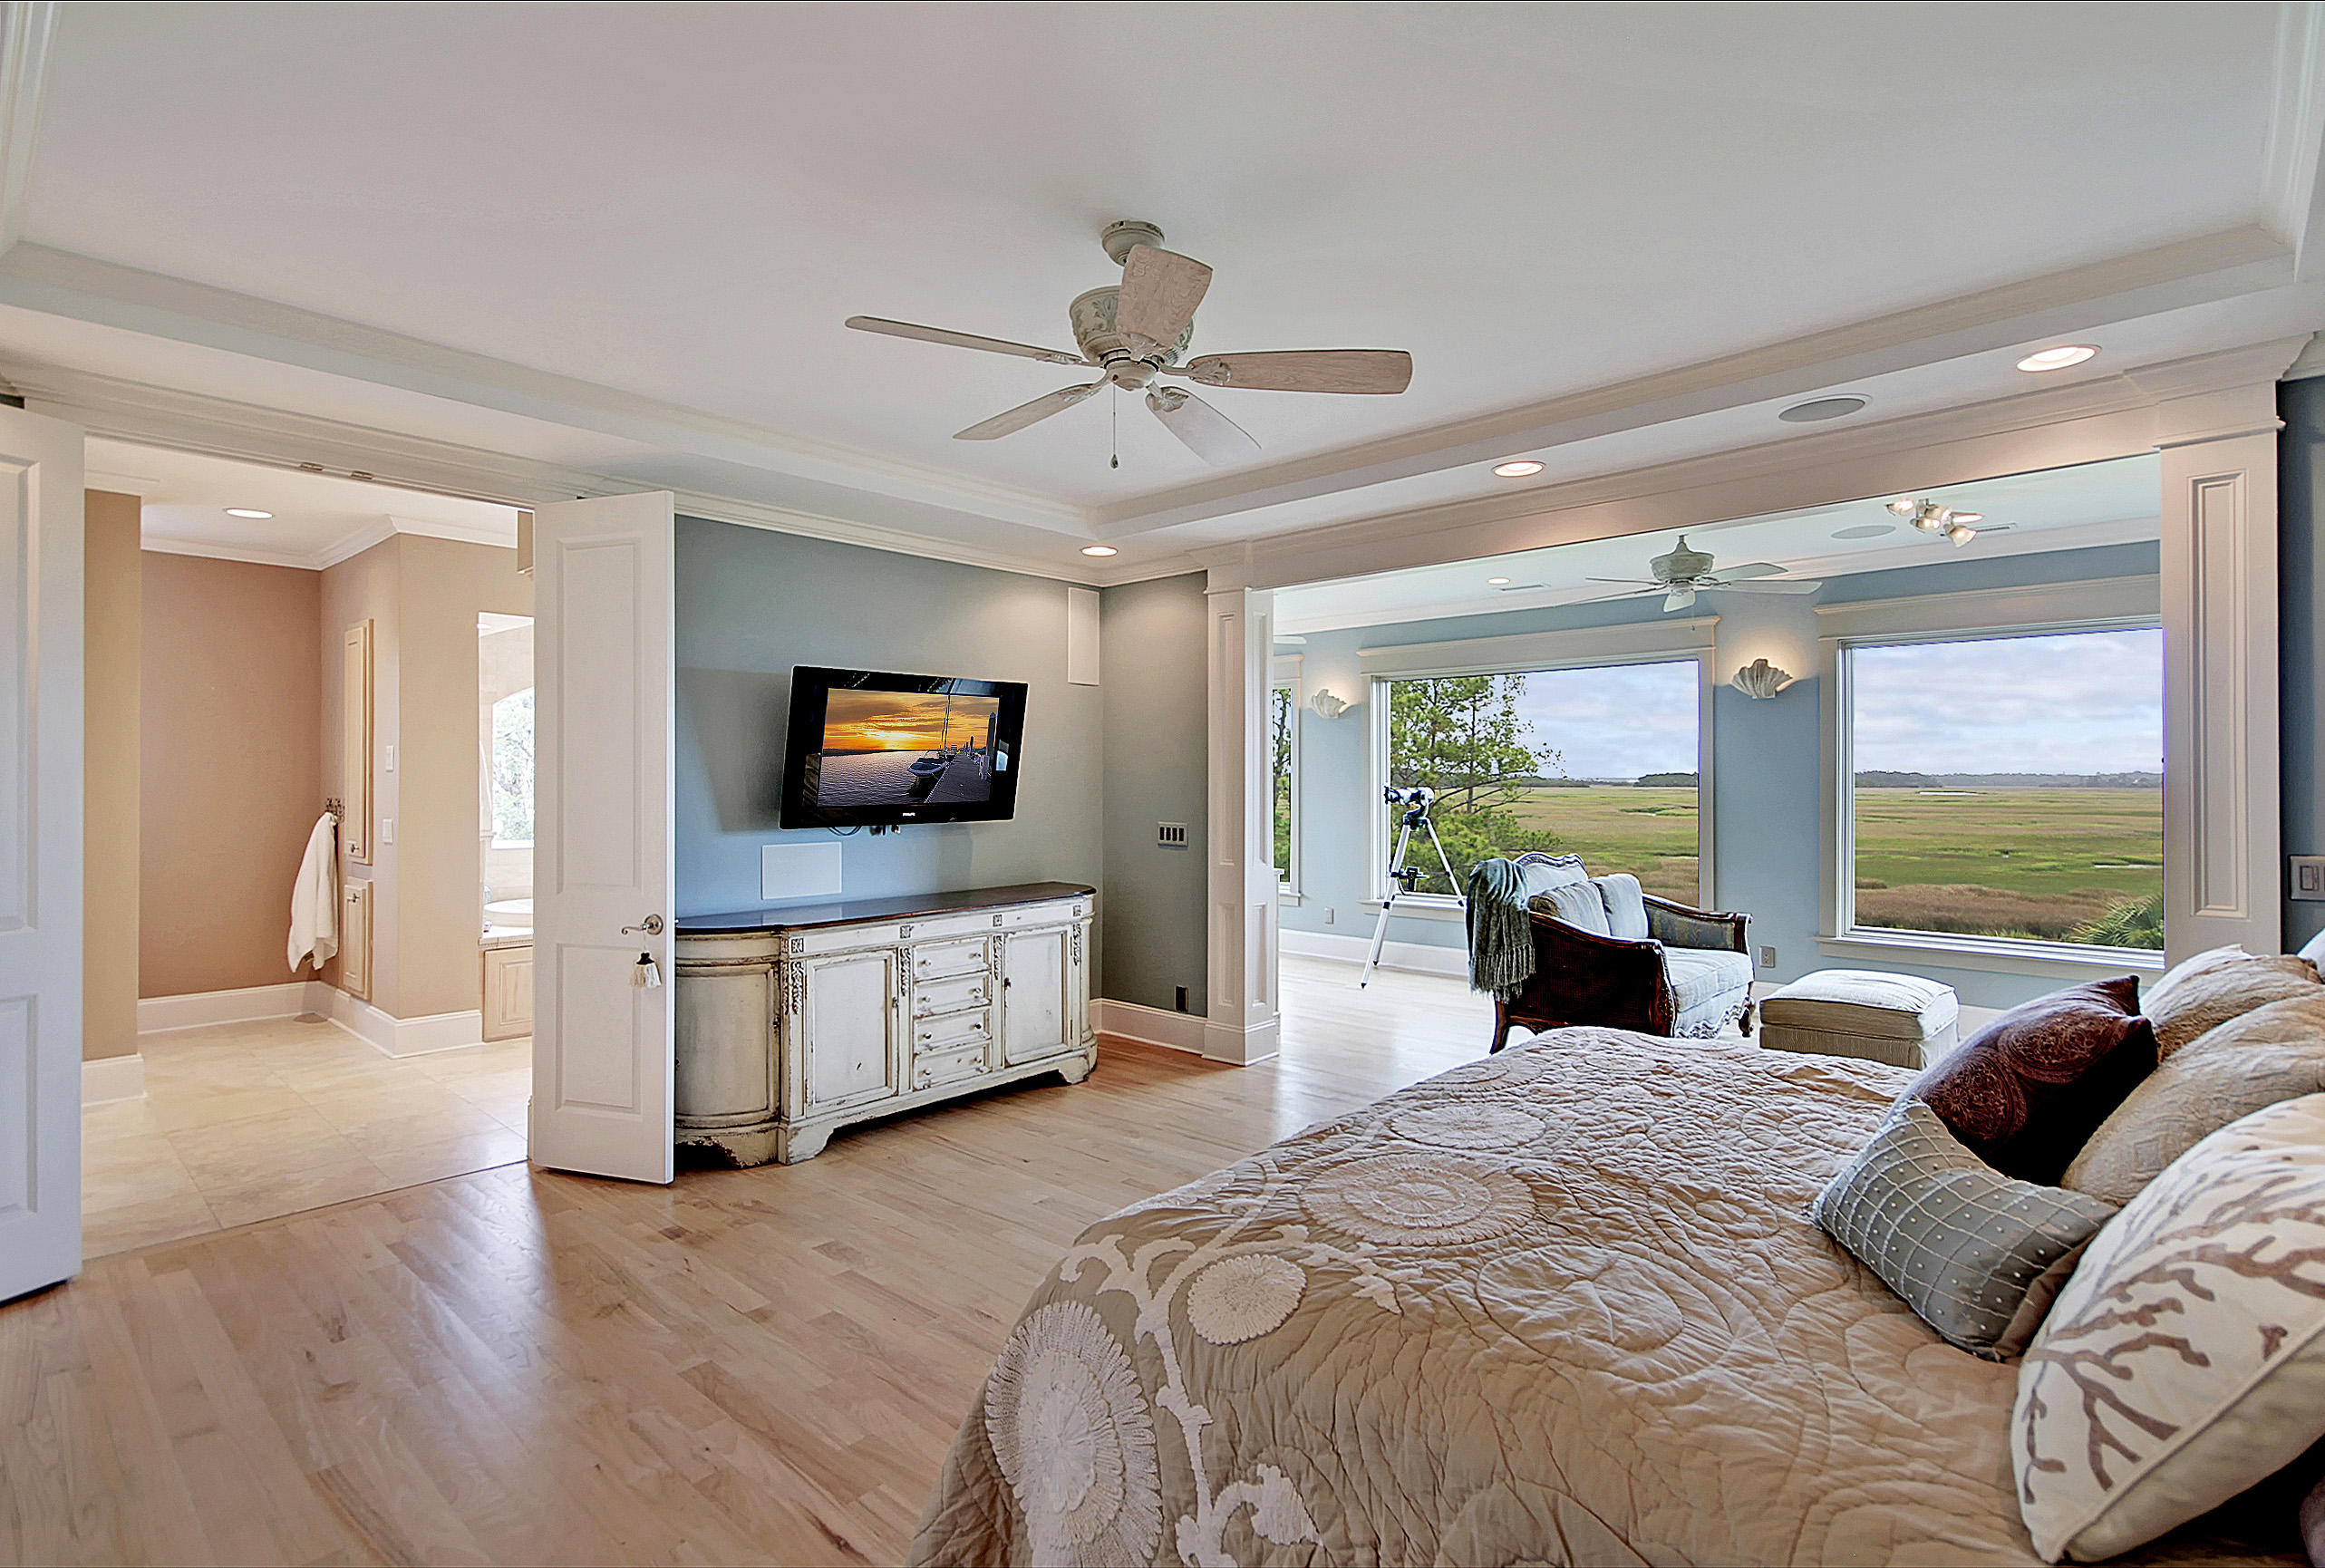 Belle Hall Homes For Sale - 210 Island Point, Mount Pleasant, SC - 19